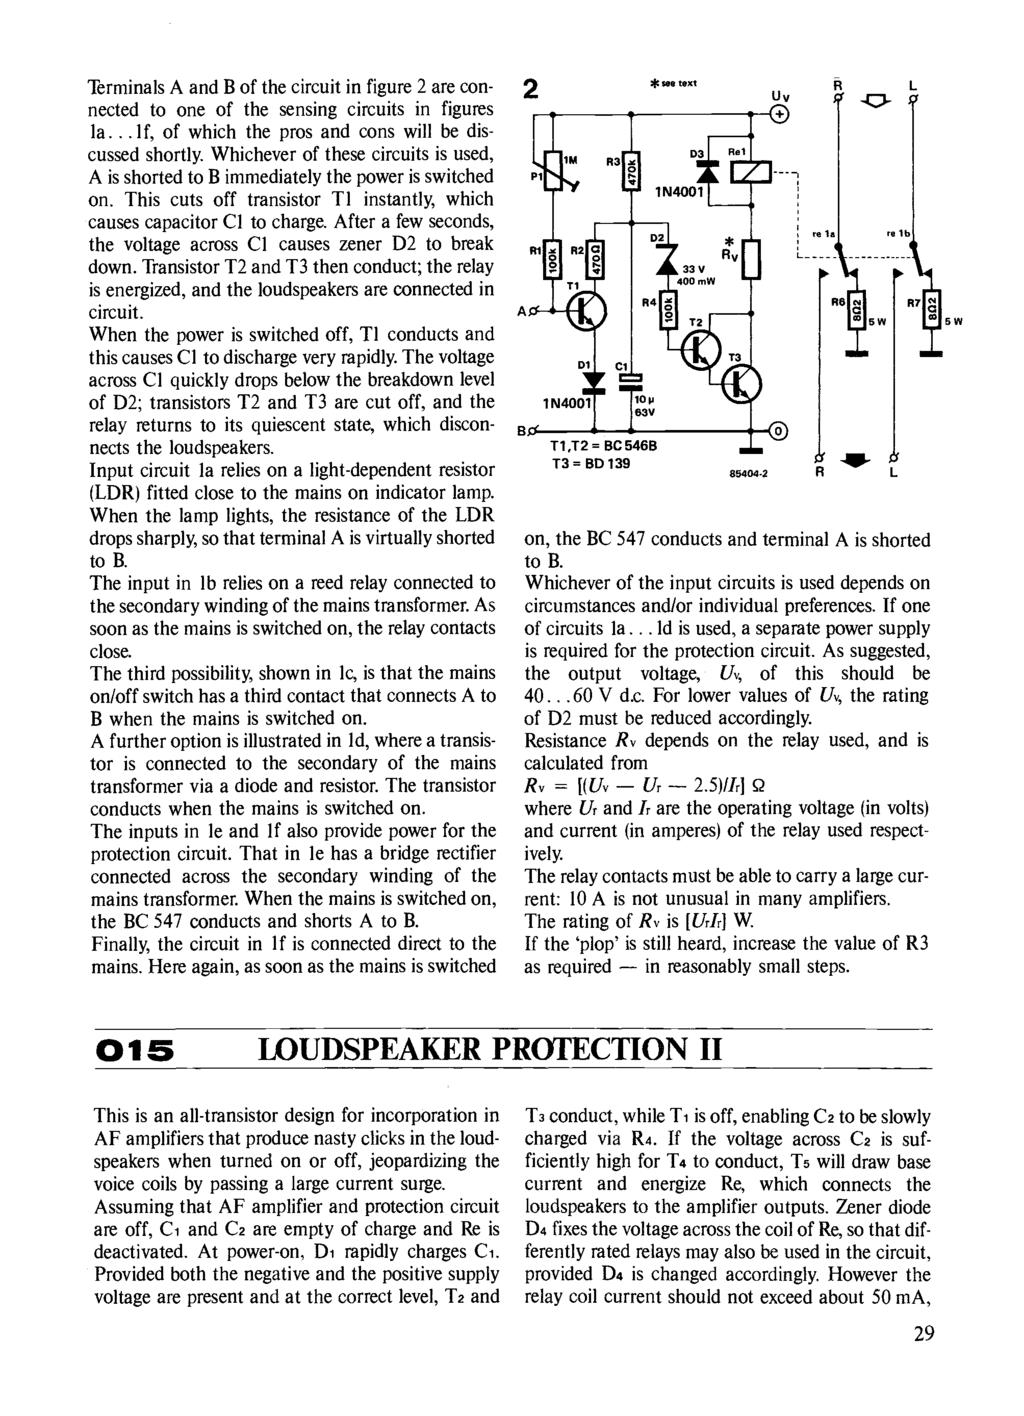 Circuits Elektor Electronics Pdf Circuit The Relay Switch 4 7k 9v As Aug Ldr A To Light Terminals And B Of In Figure 2 Are Connected One